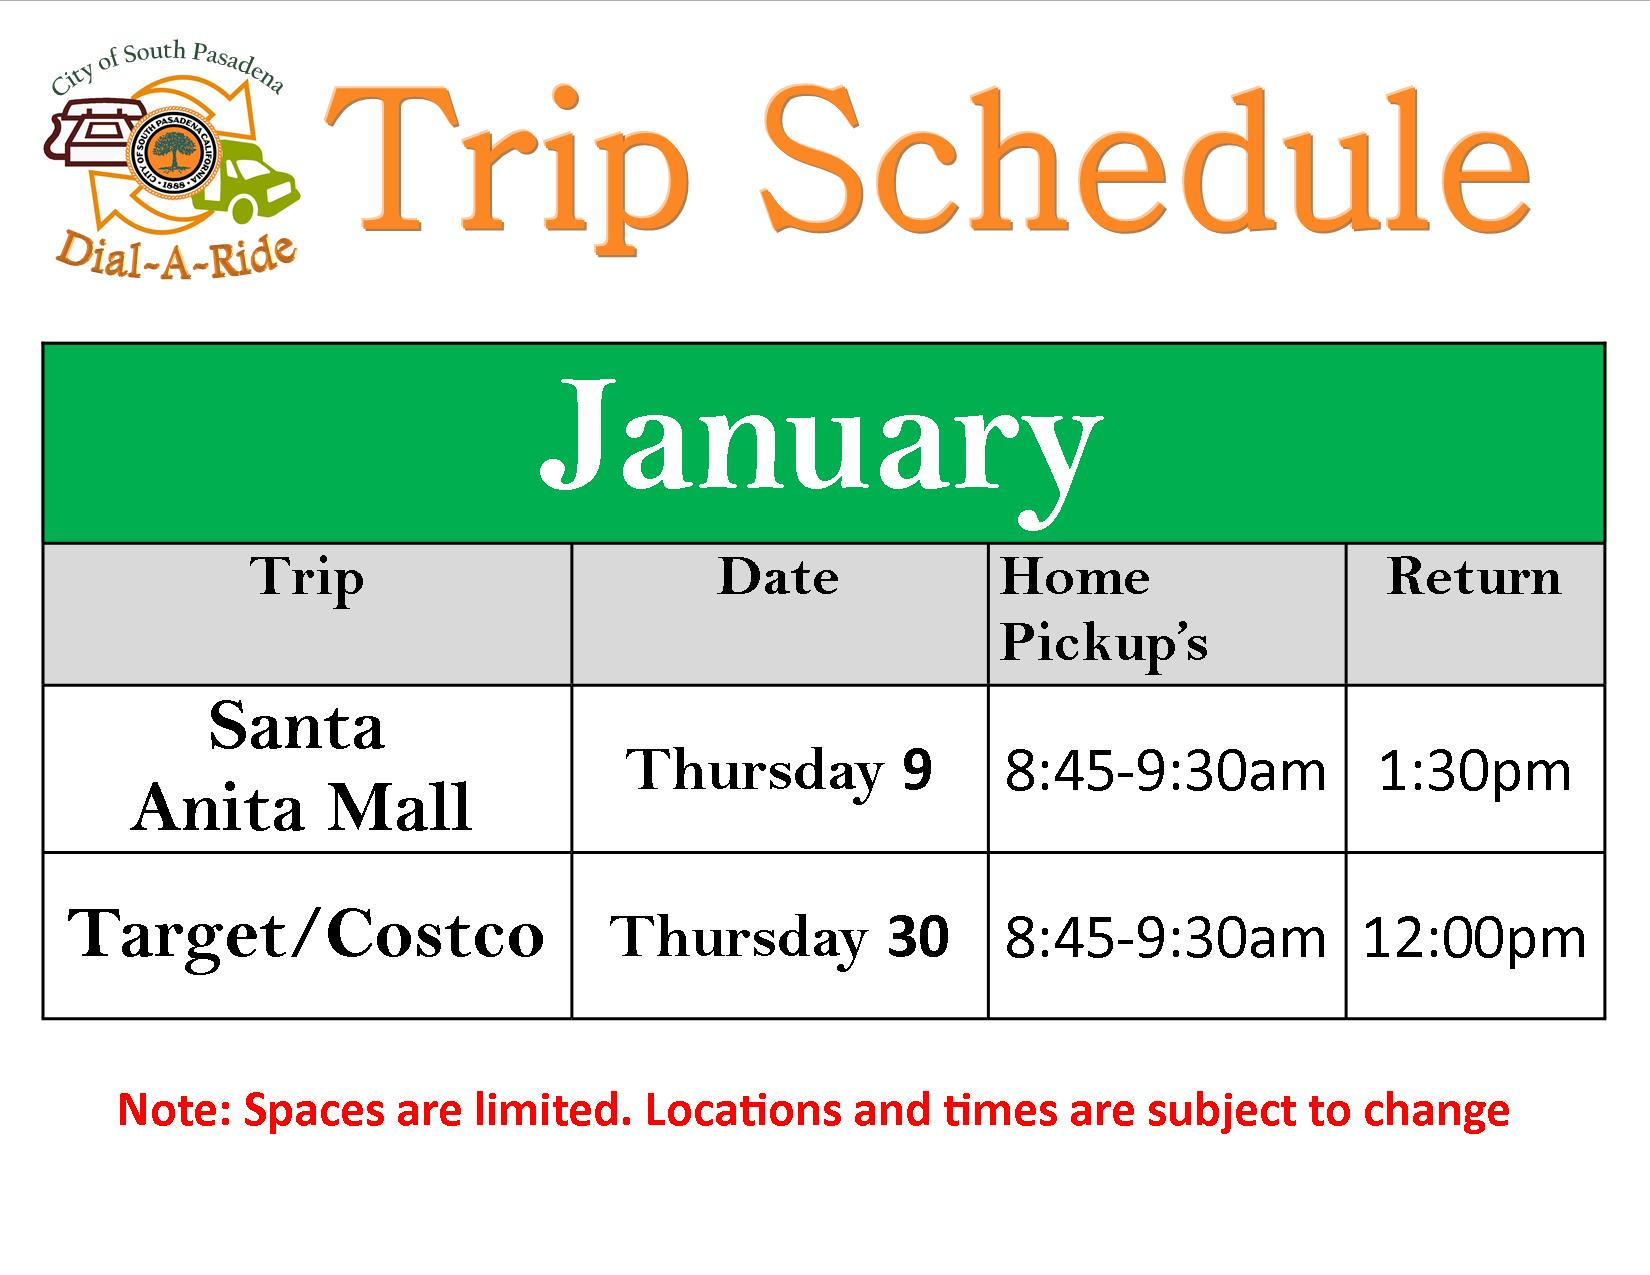 Dial-A-Ride's Trips to the Santa Anita Mall & Target/Costco